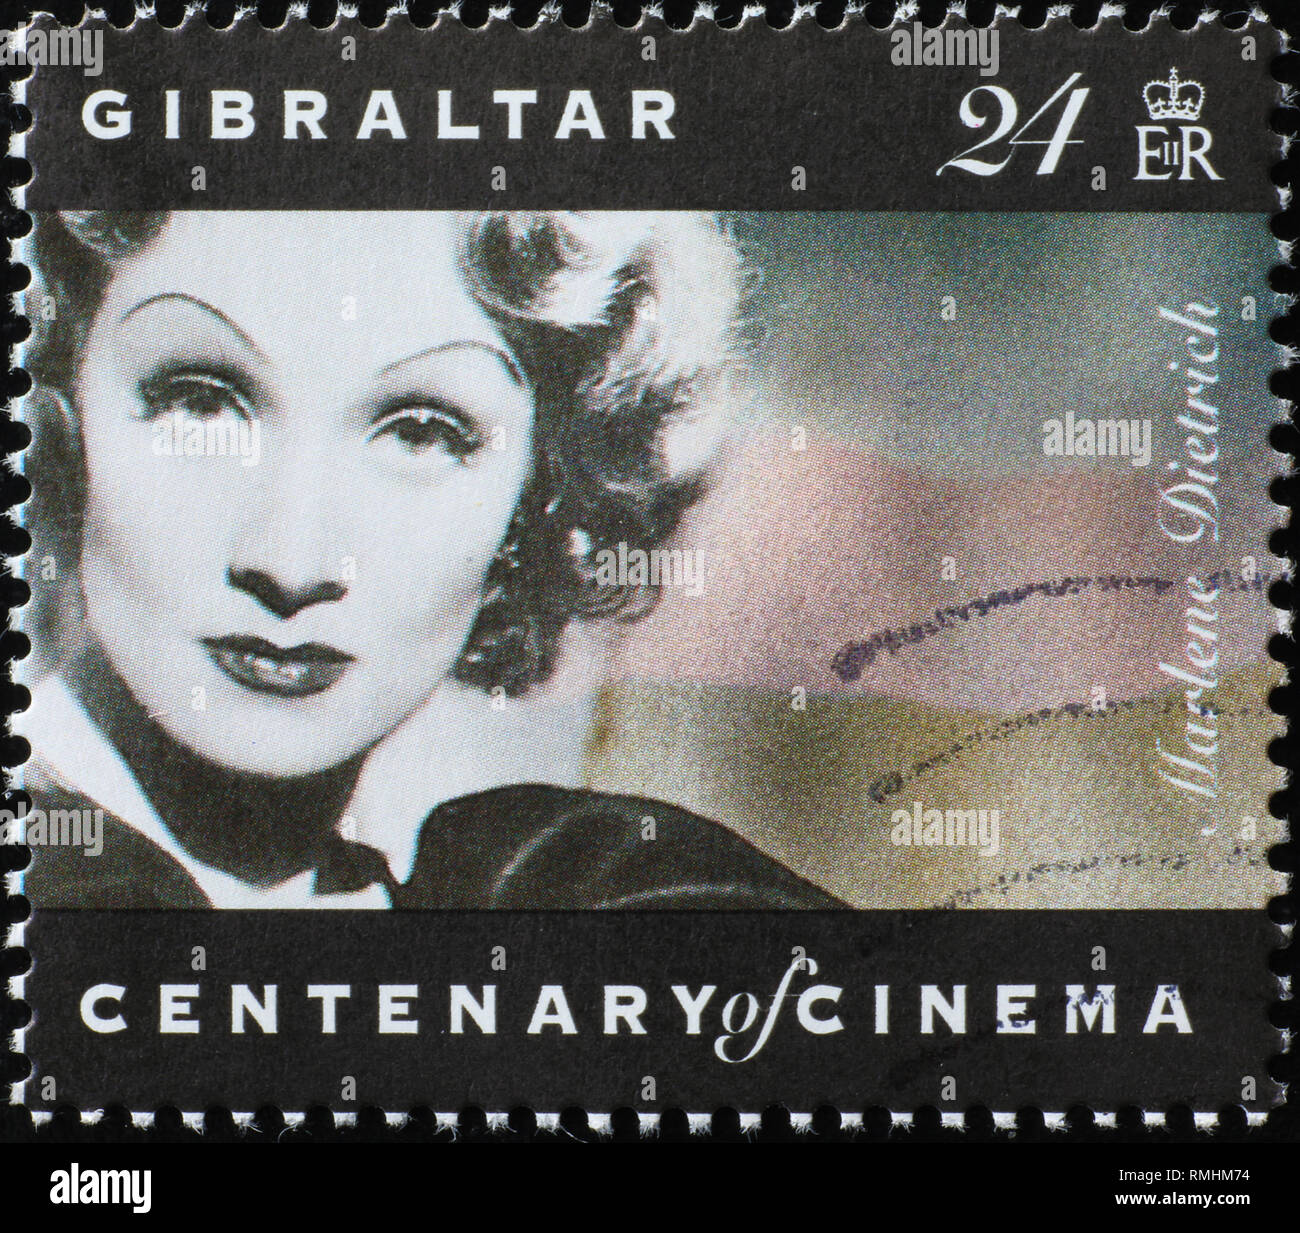 Portrait of Marlene Dietrich on stamp of Gibraltar - Stock Image